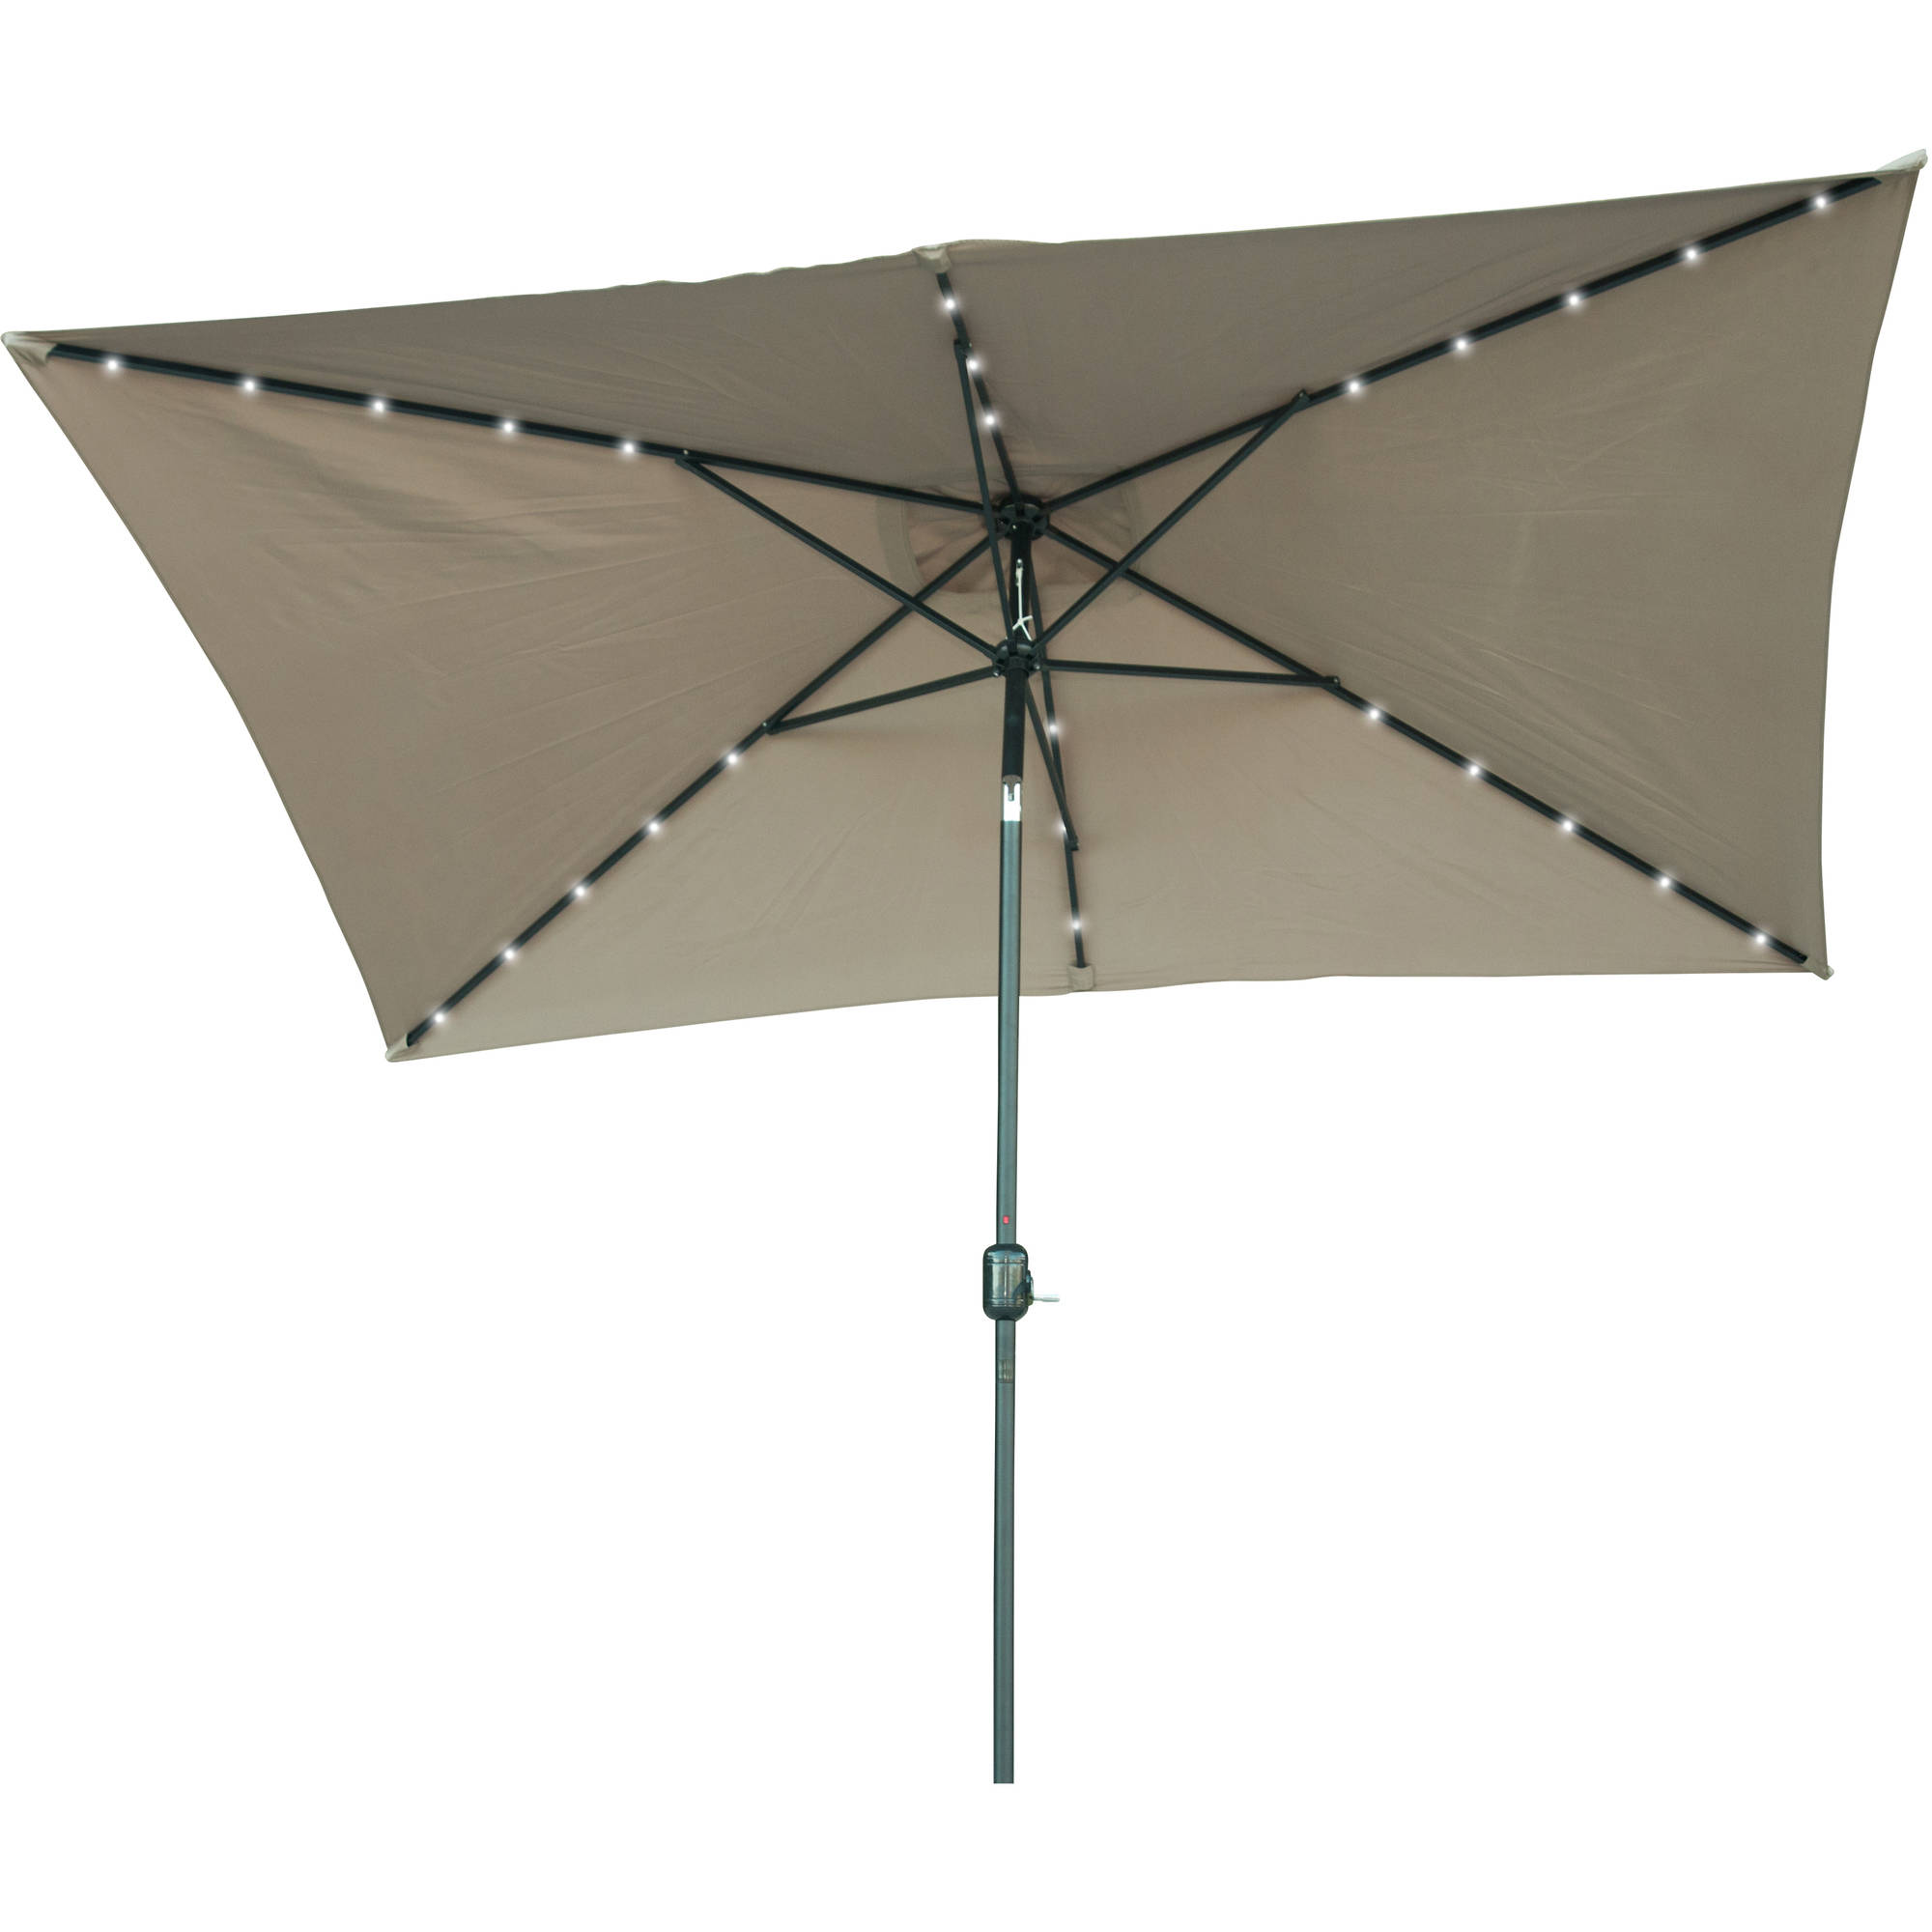 Merveilleux Rectangular Solar Powered LED Lighted Patio Umbrella   10u0027 X 6.5u0027   By  Trademark